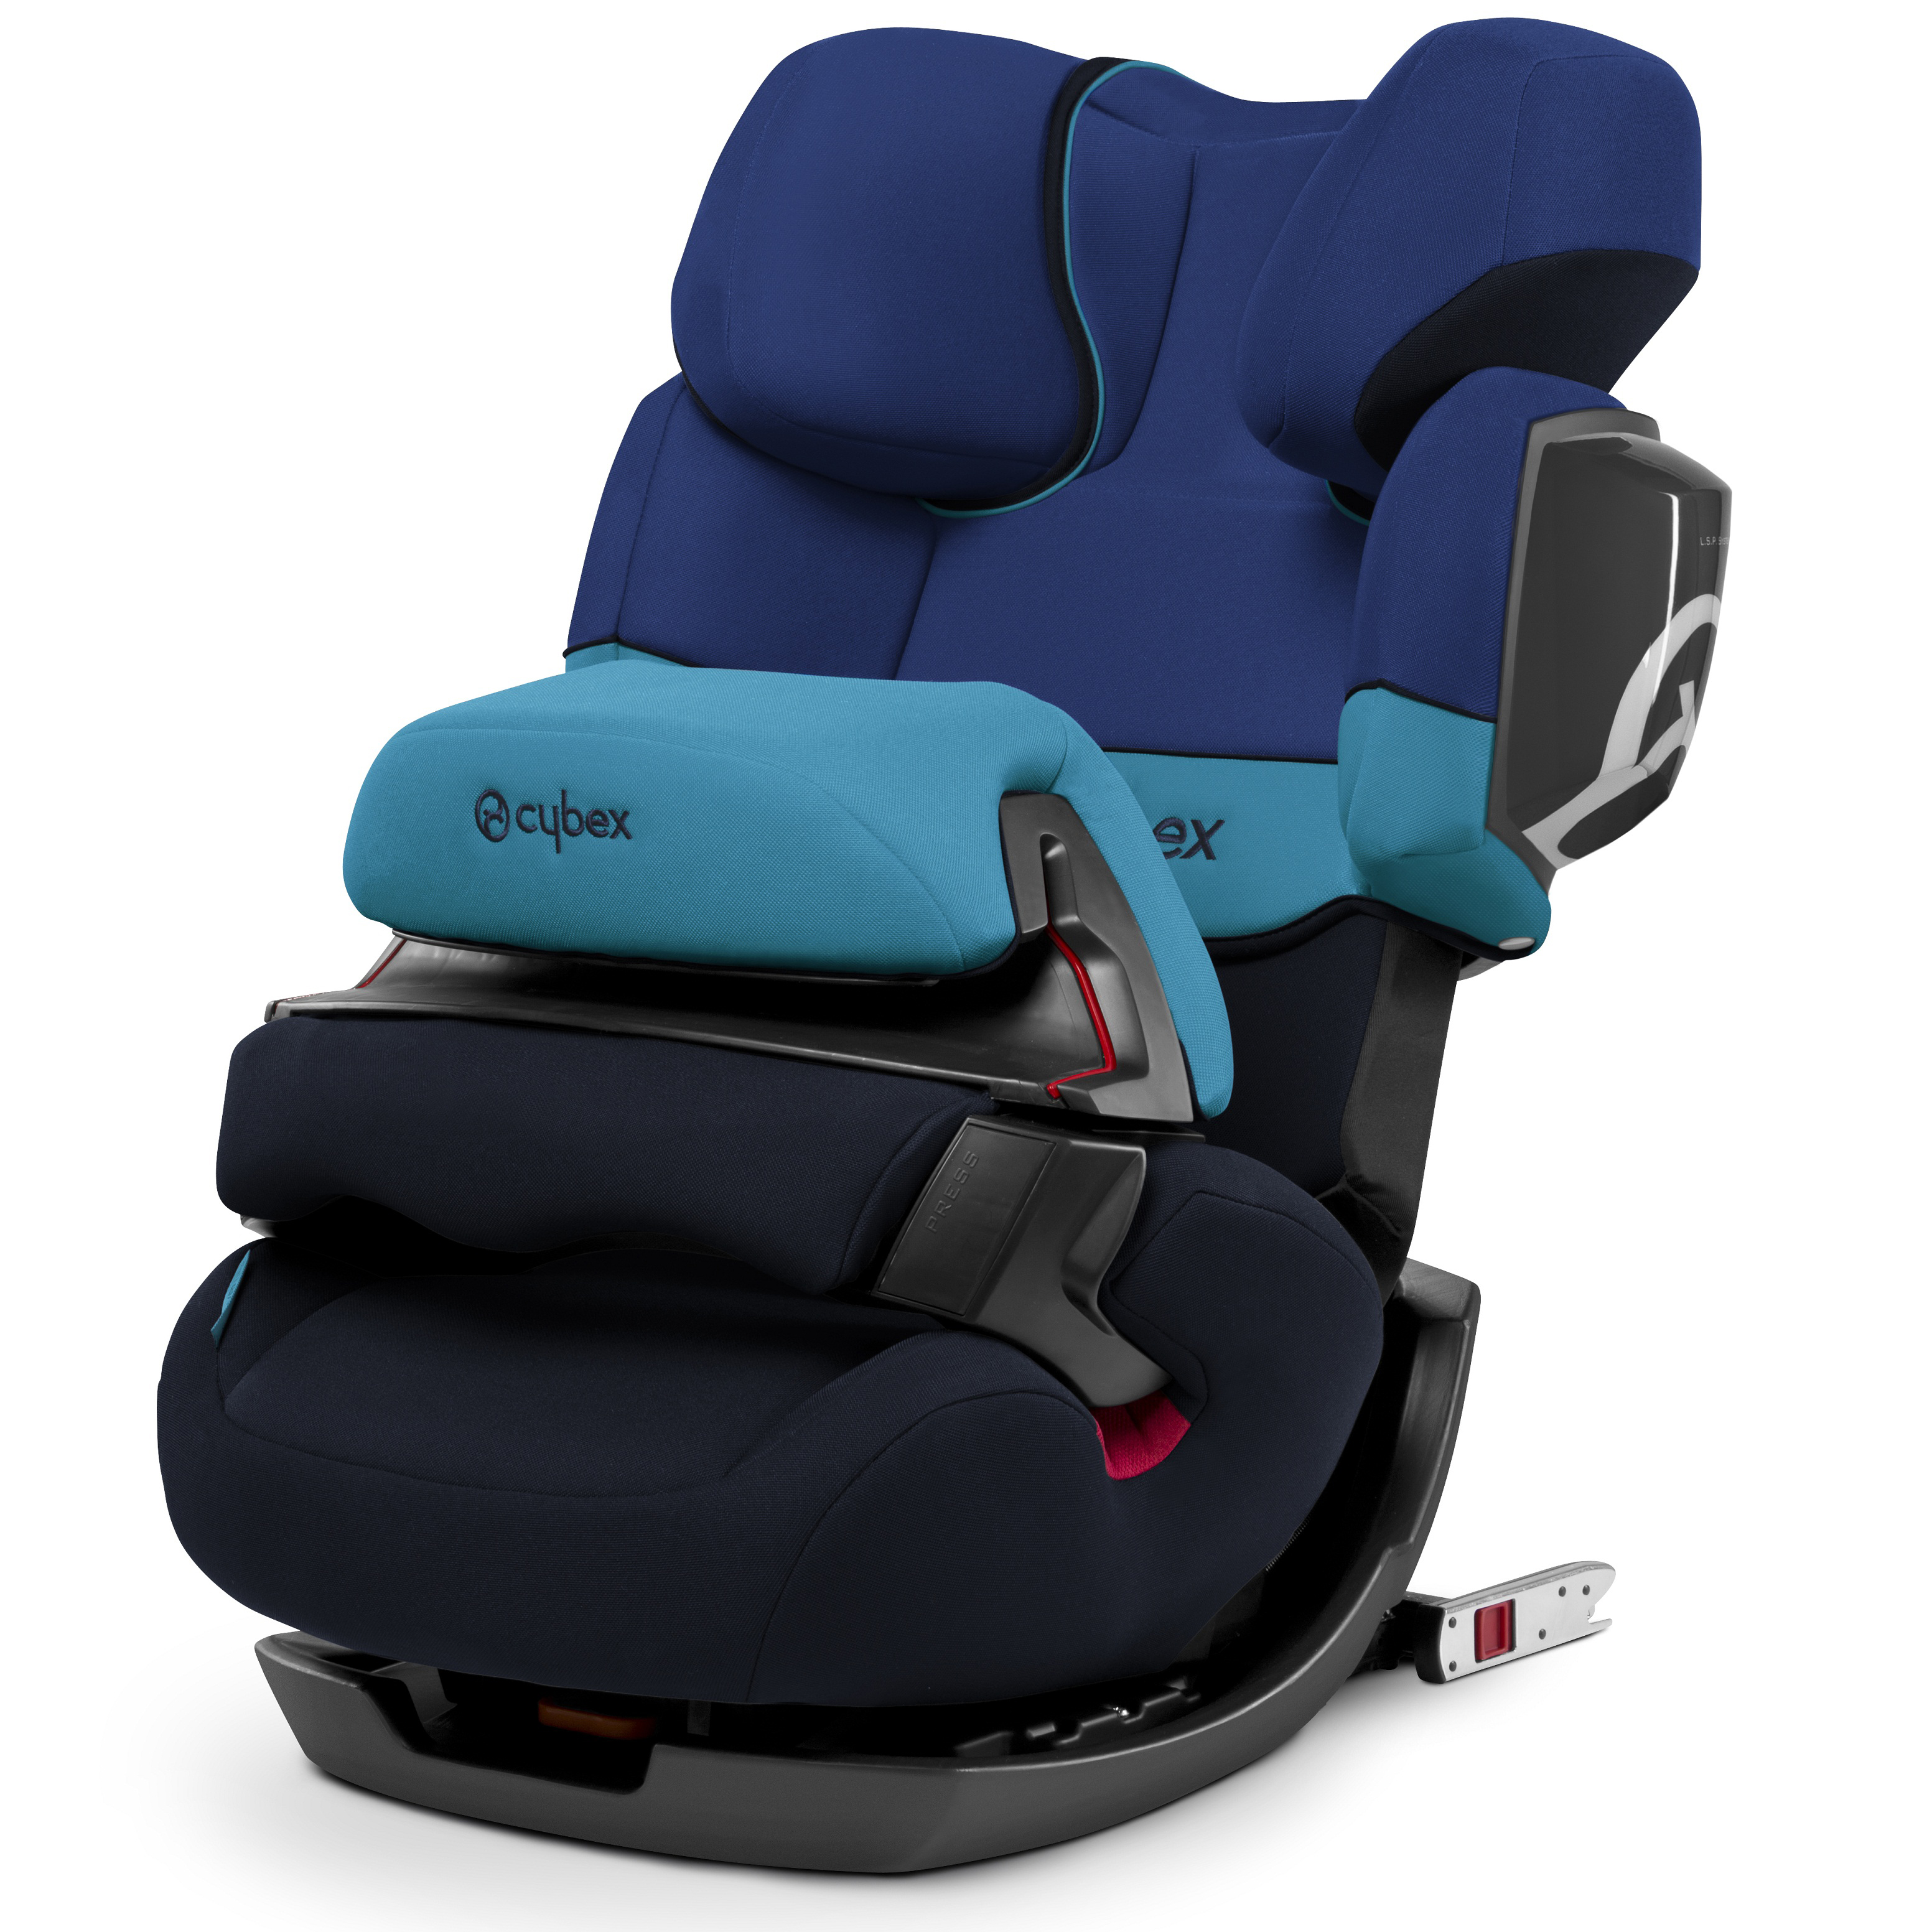 Child Car Safety Seats Cybex 515111002 for girls and boys Baby seat Kids Children chair autocradle booster  Blue